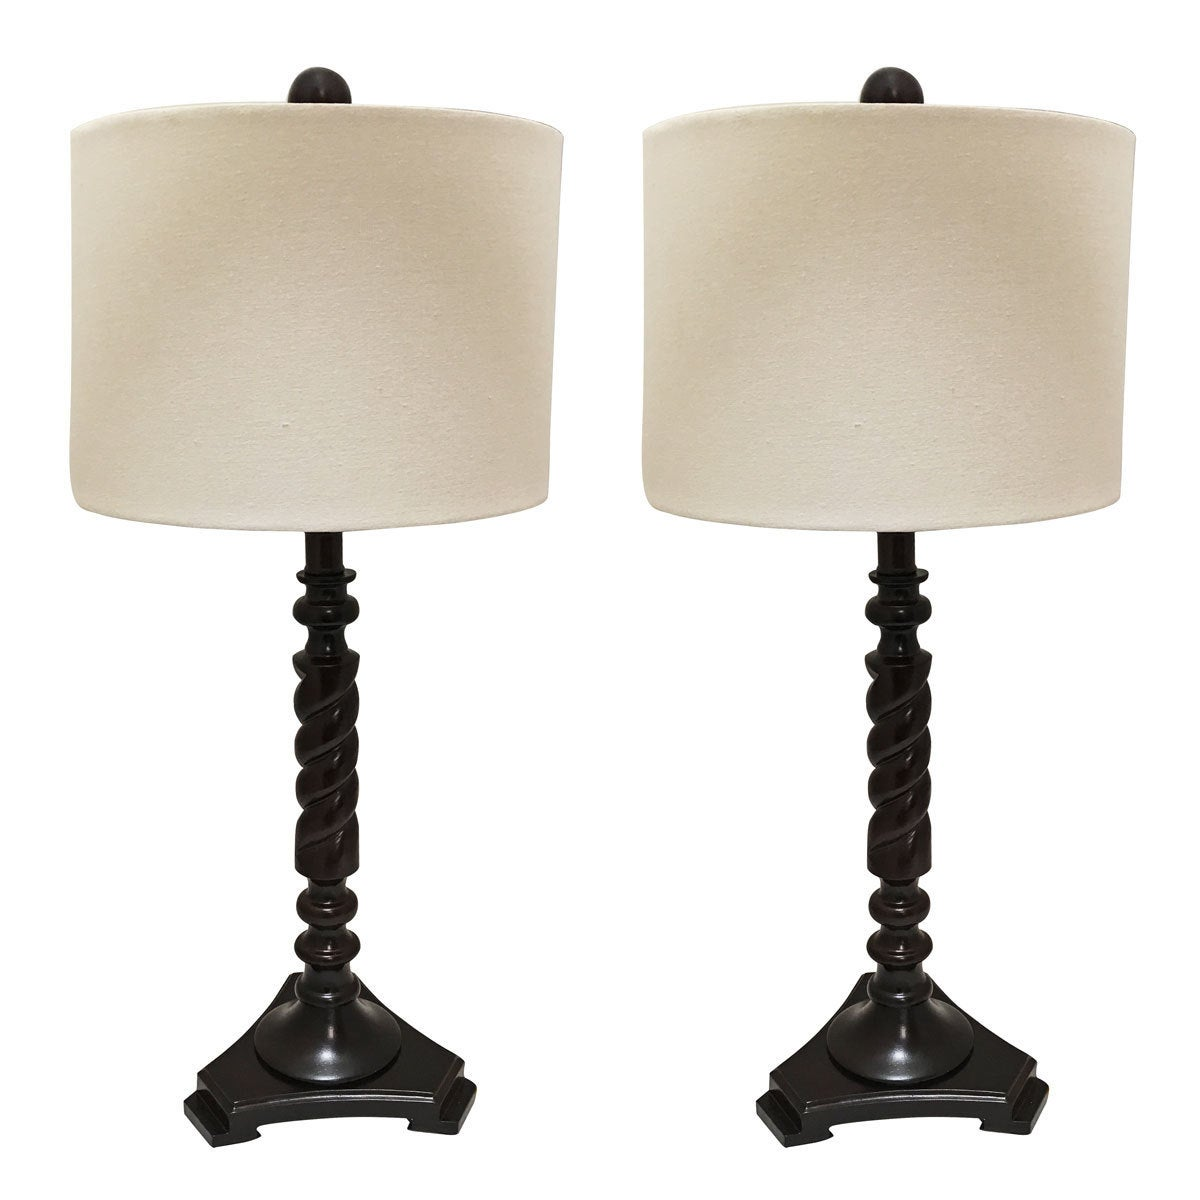 Royal Designs Set Of 2 Wooden Table Lamps With Linen Eggshell Hard Back Lamp Shade 28 Tall